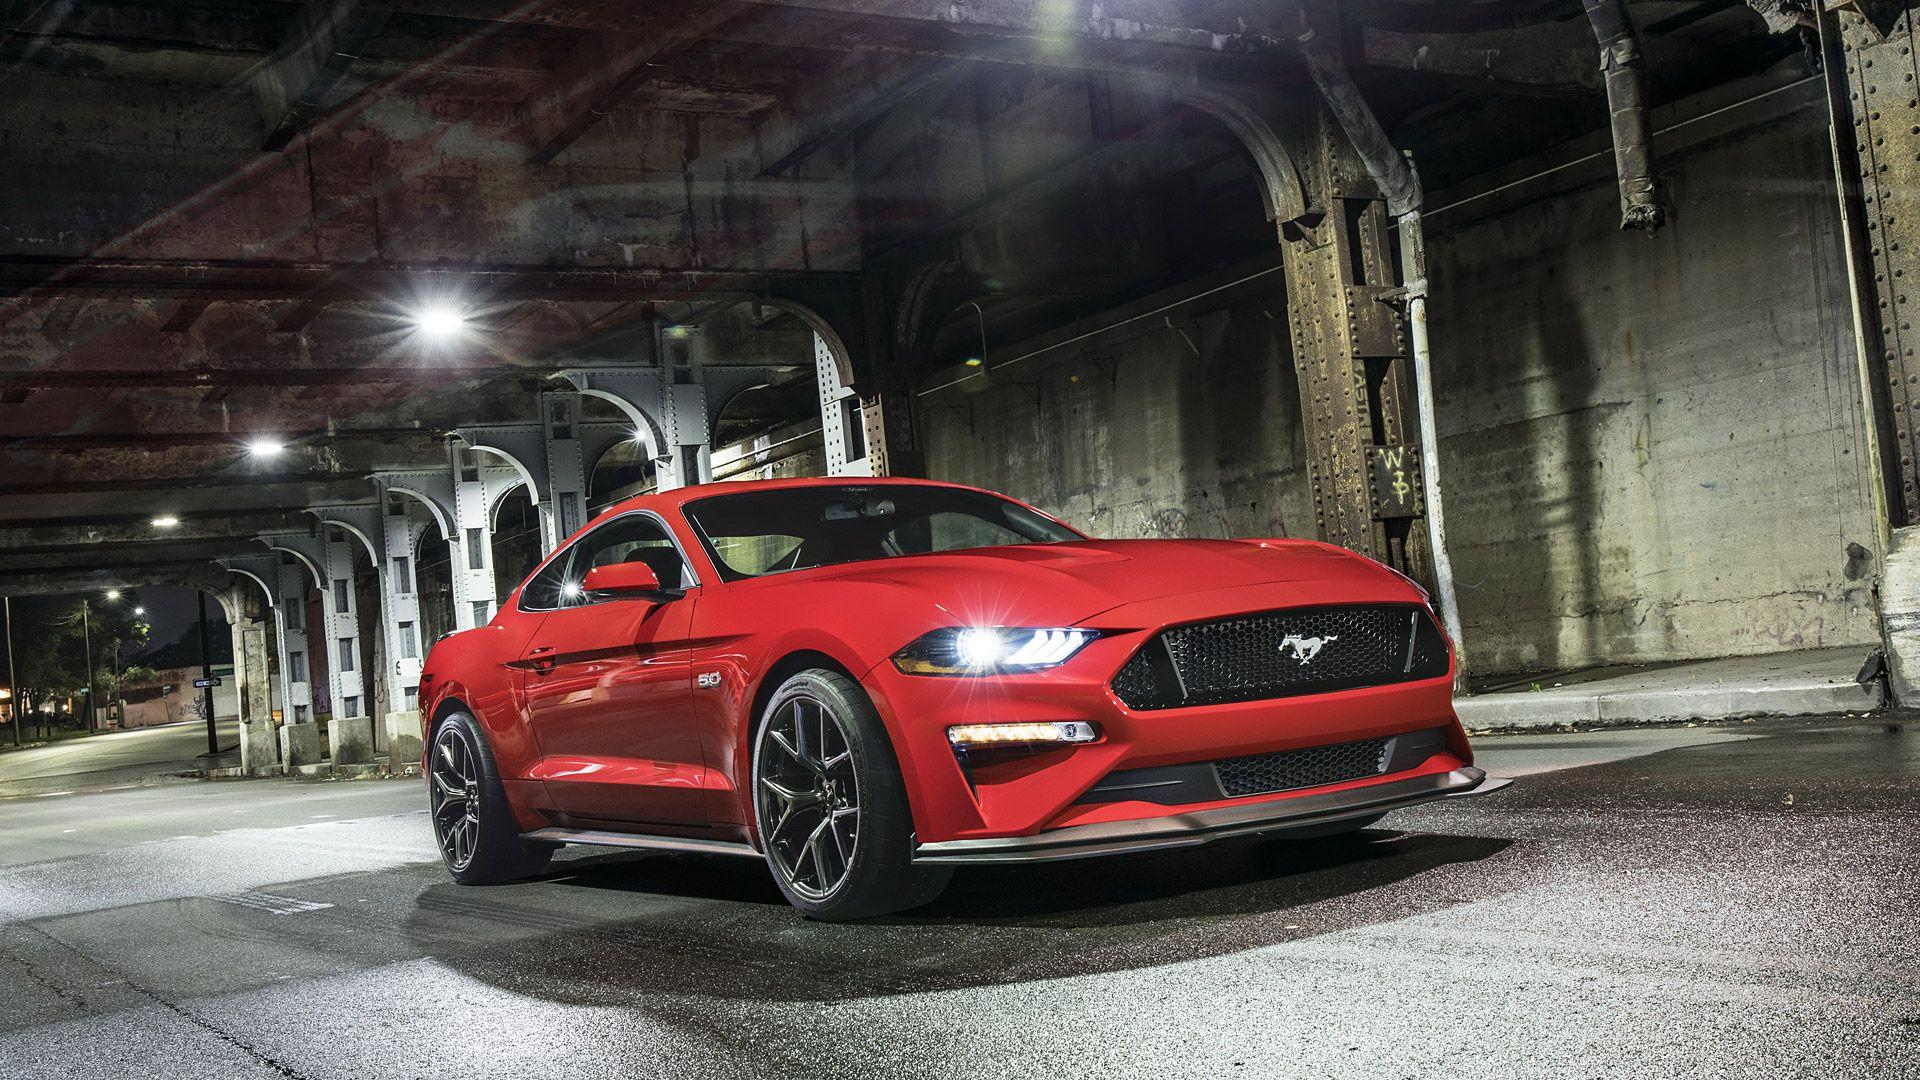 2018 Ford Mustang GT Performance Pack Level 2 Full HD Wallpapers